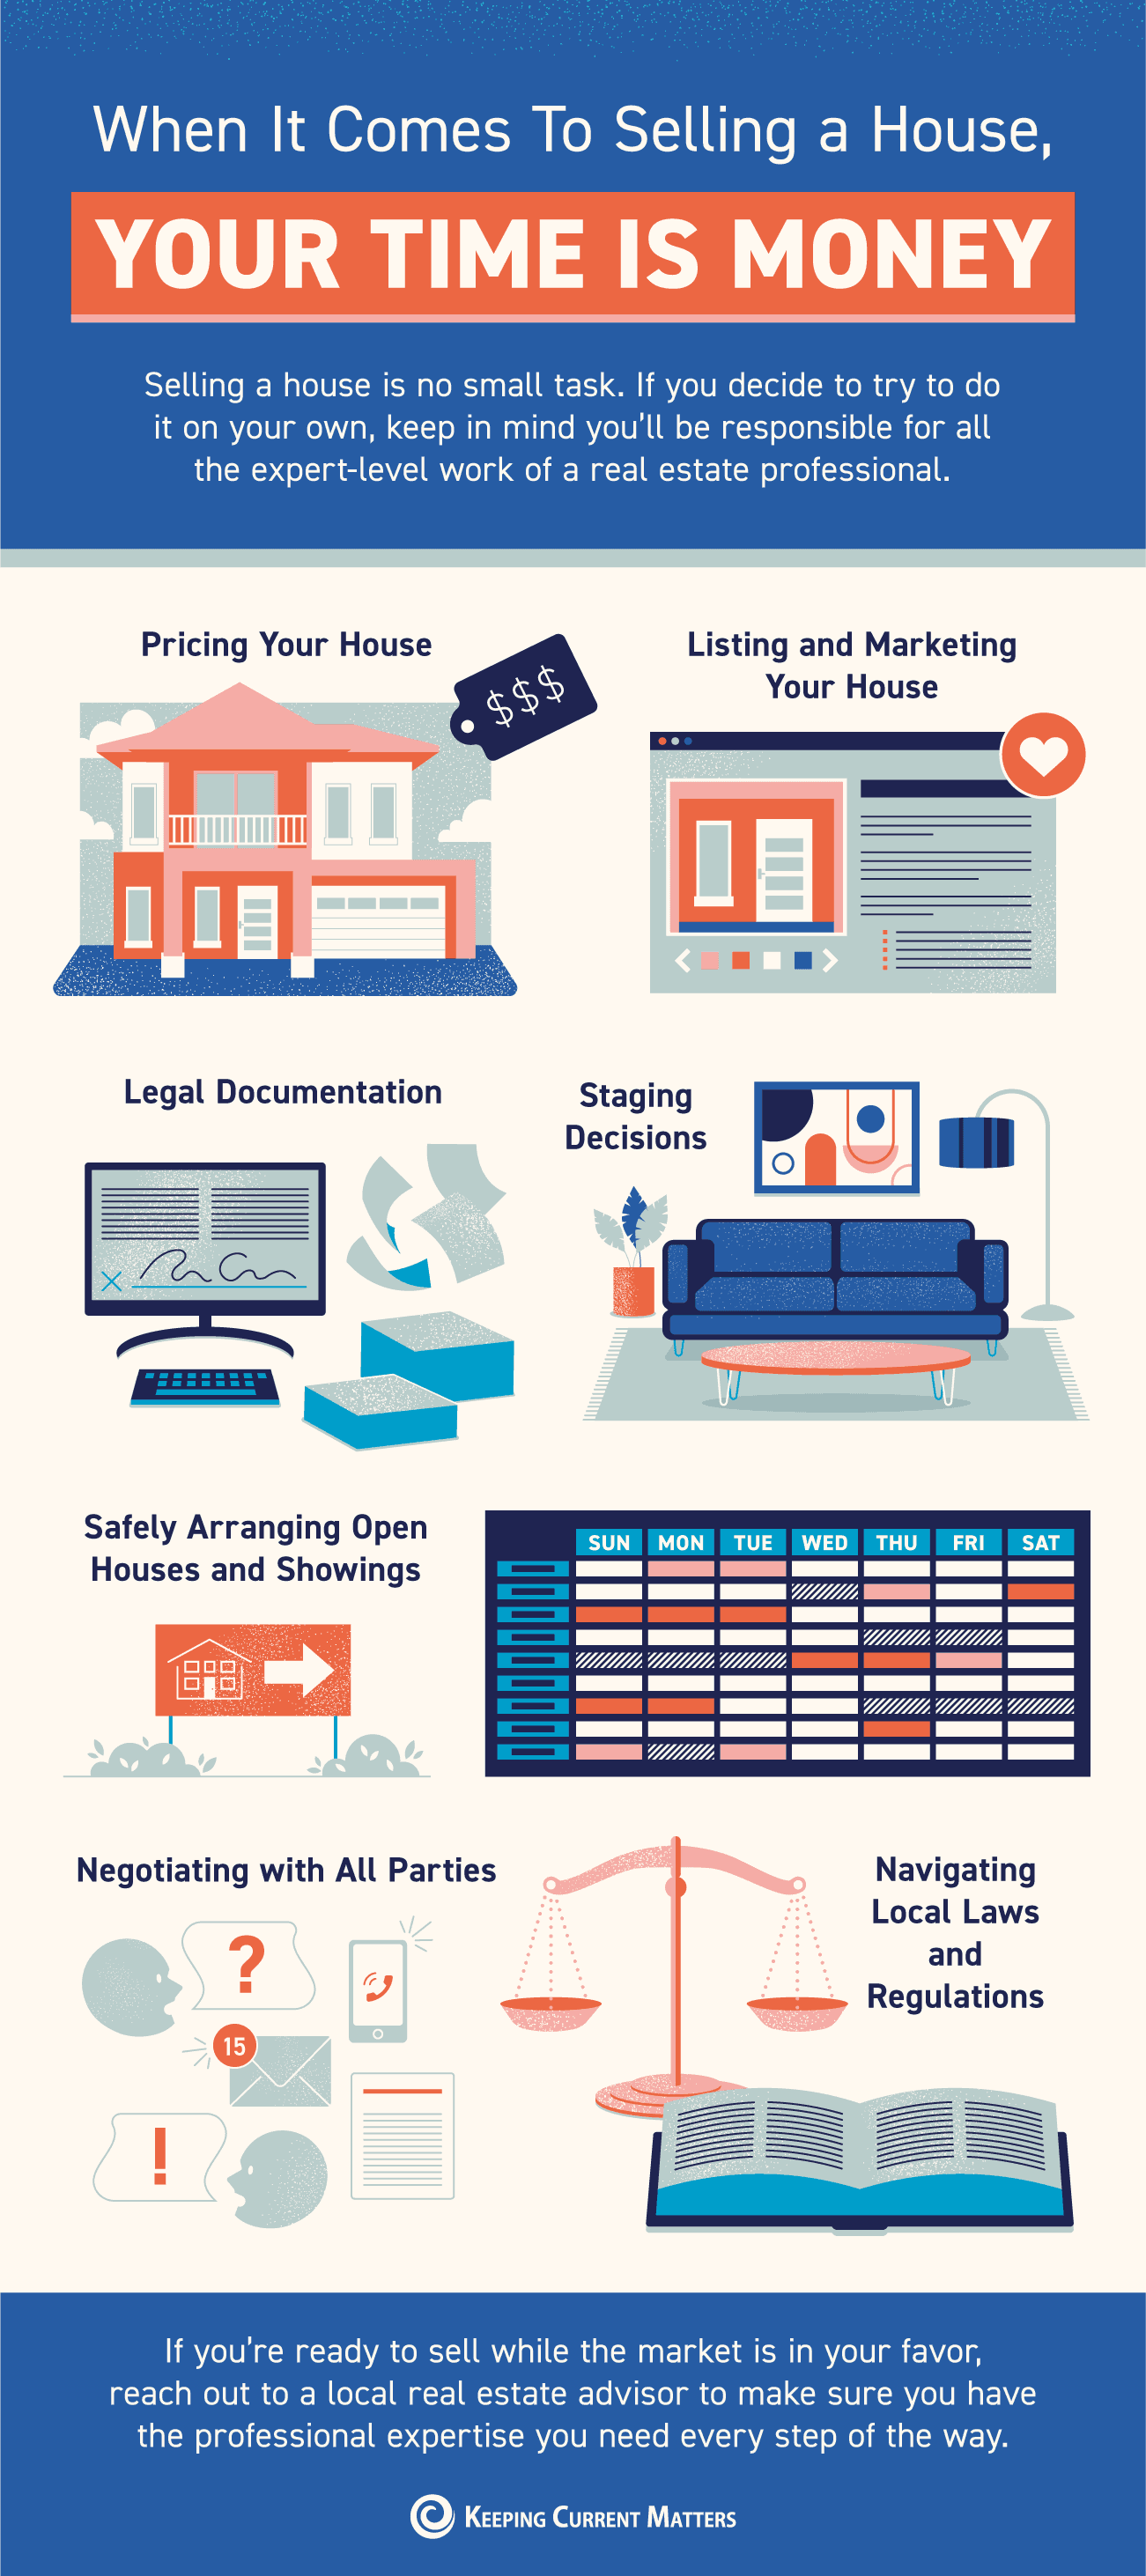 When It Comes To Selling a House, Your Time Is Money [INFOGRAPHIC] | Keeping Current Matters